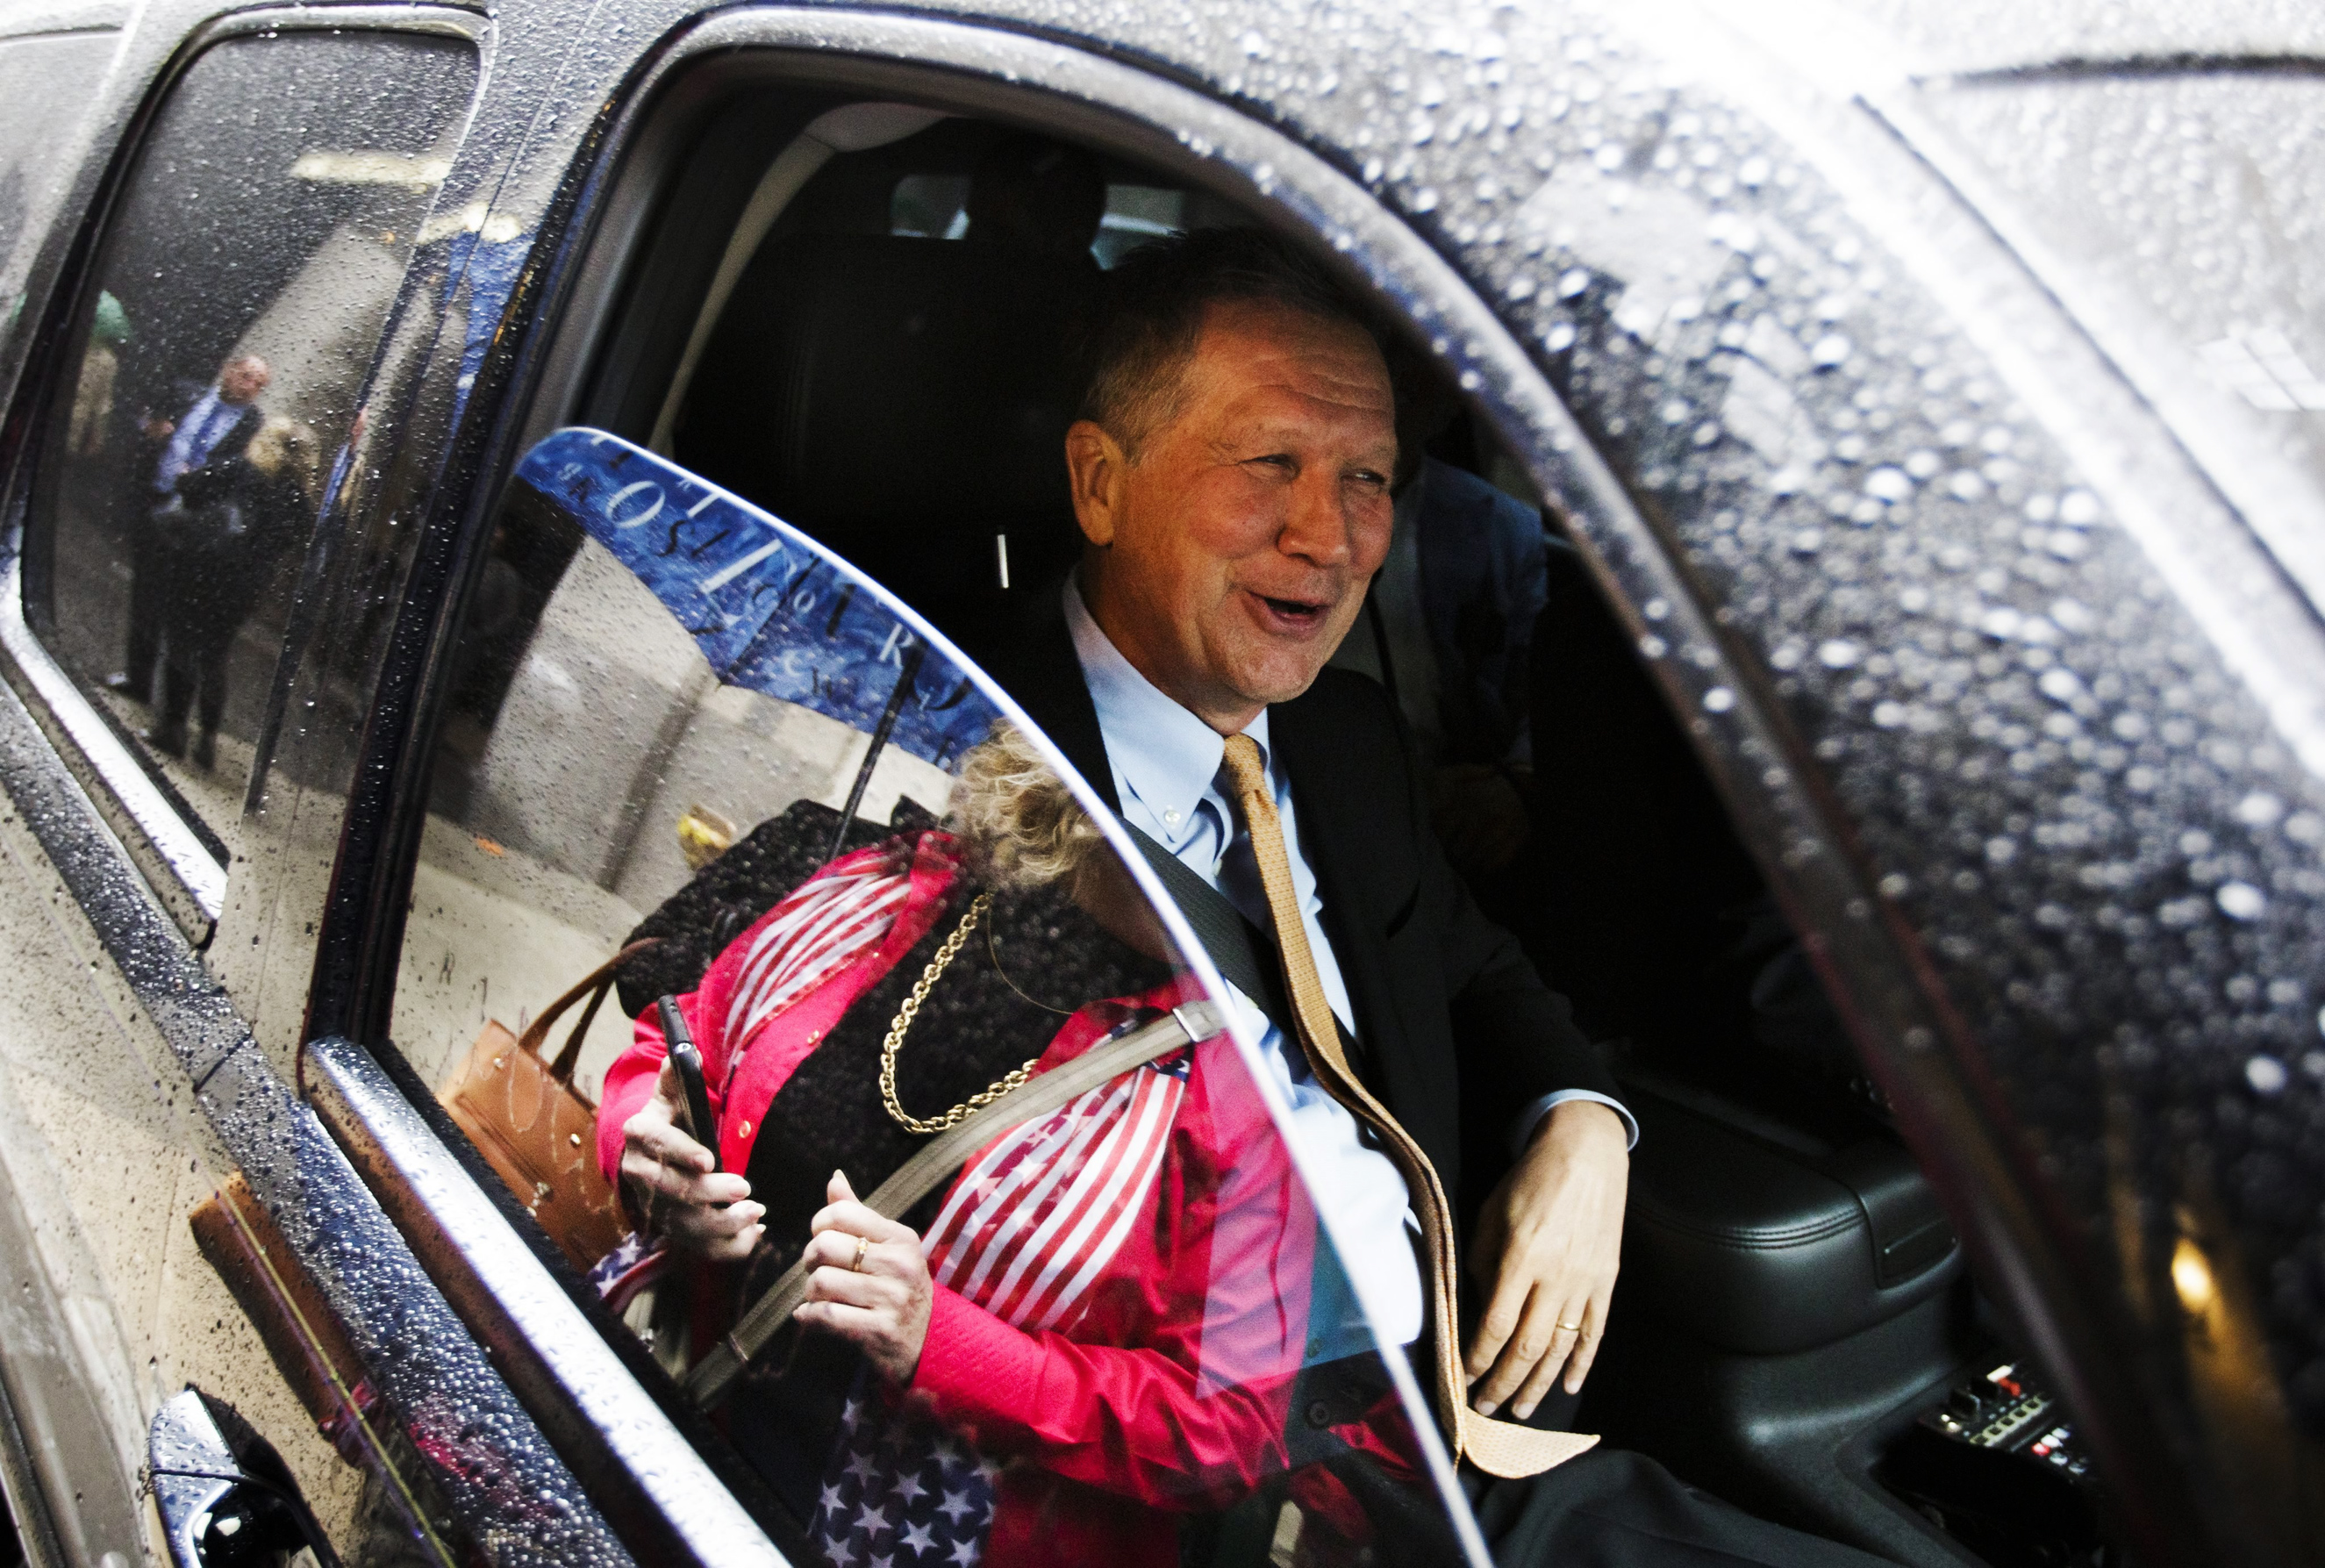 Republican presidential candidate, Ohioh Gov. John Kasich talks to reporters from his car in New York on April 12, 2016.